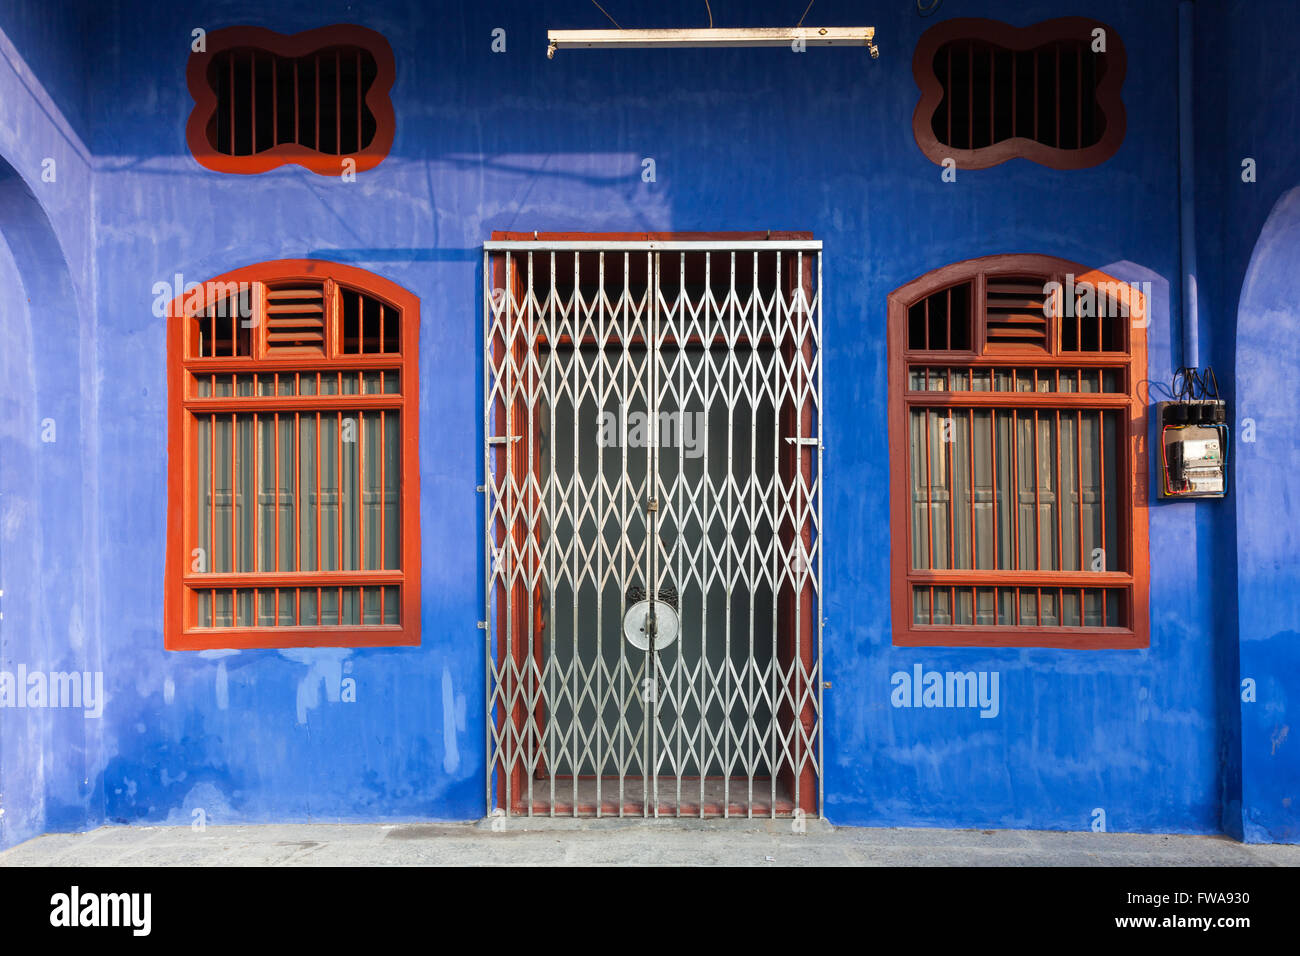 Facade of the old historial shophouse in George Town, Penang, Malaysia. - Stock Image